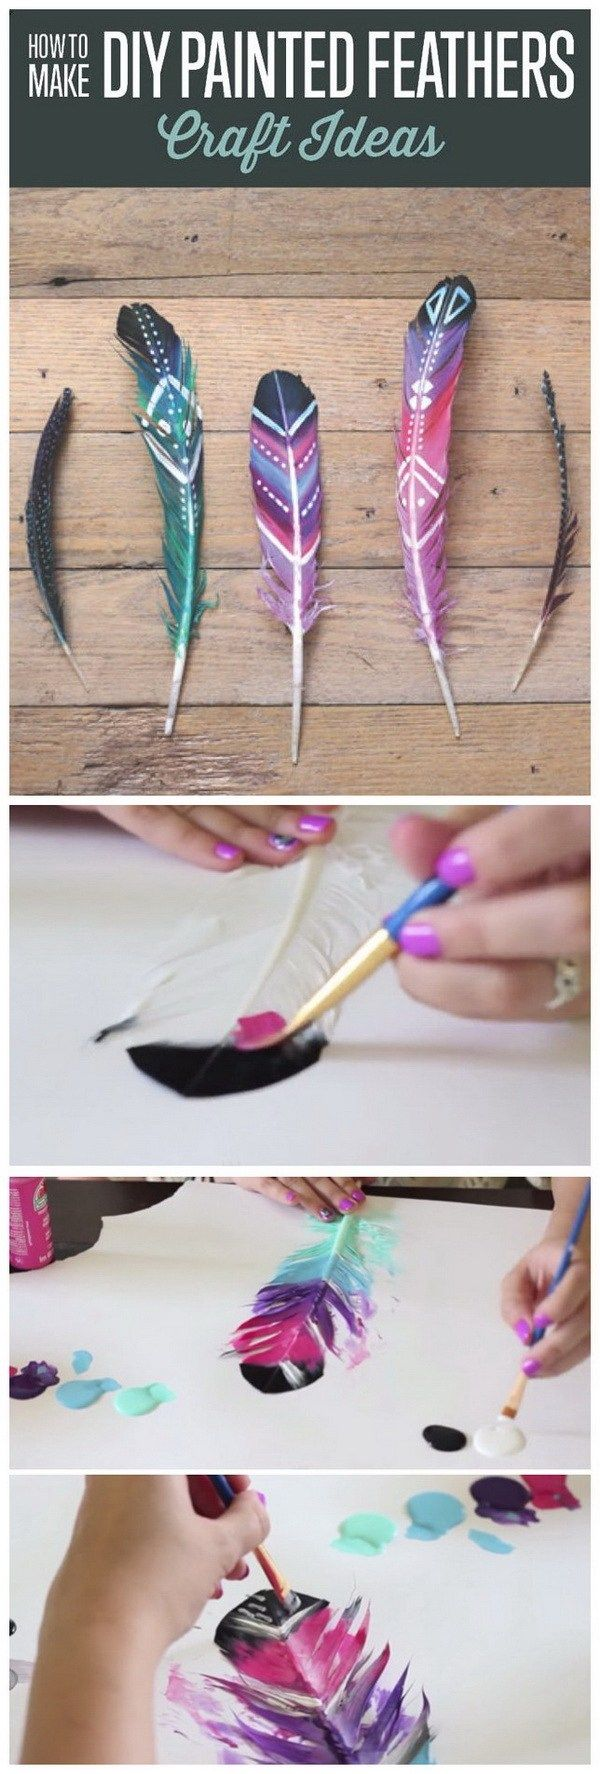 DIY Painted Feathers. DIY Painted Feathers. Another fun and easy to make DIY weekend project for girls!